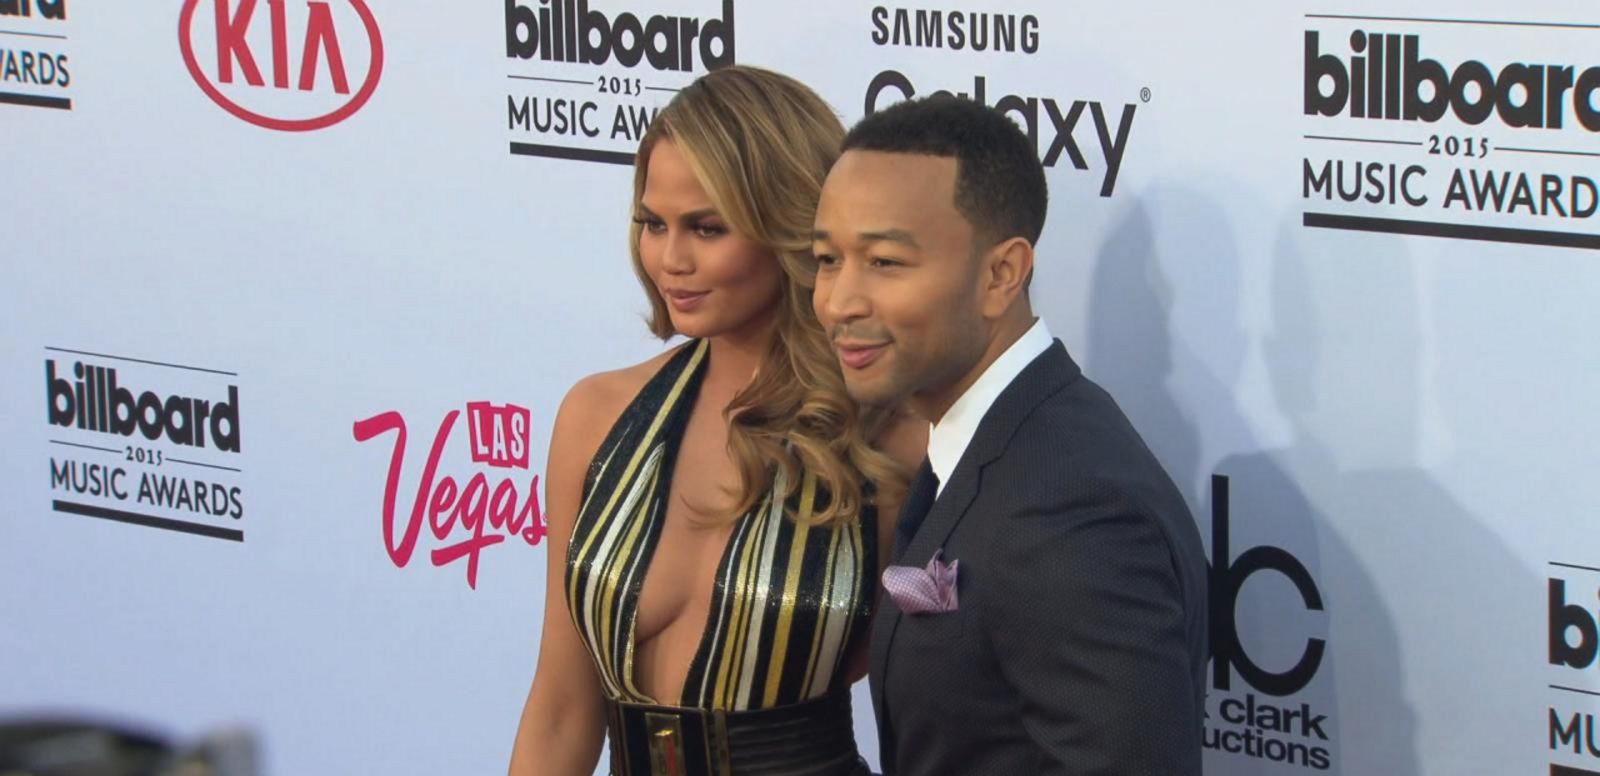 VIDEO: John Legend and Chrissy Teigen Expecting 1st Child